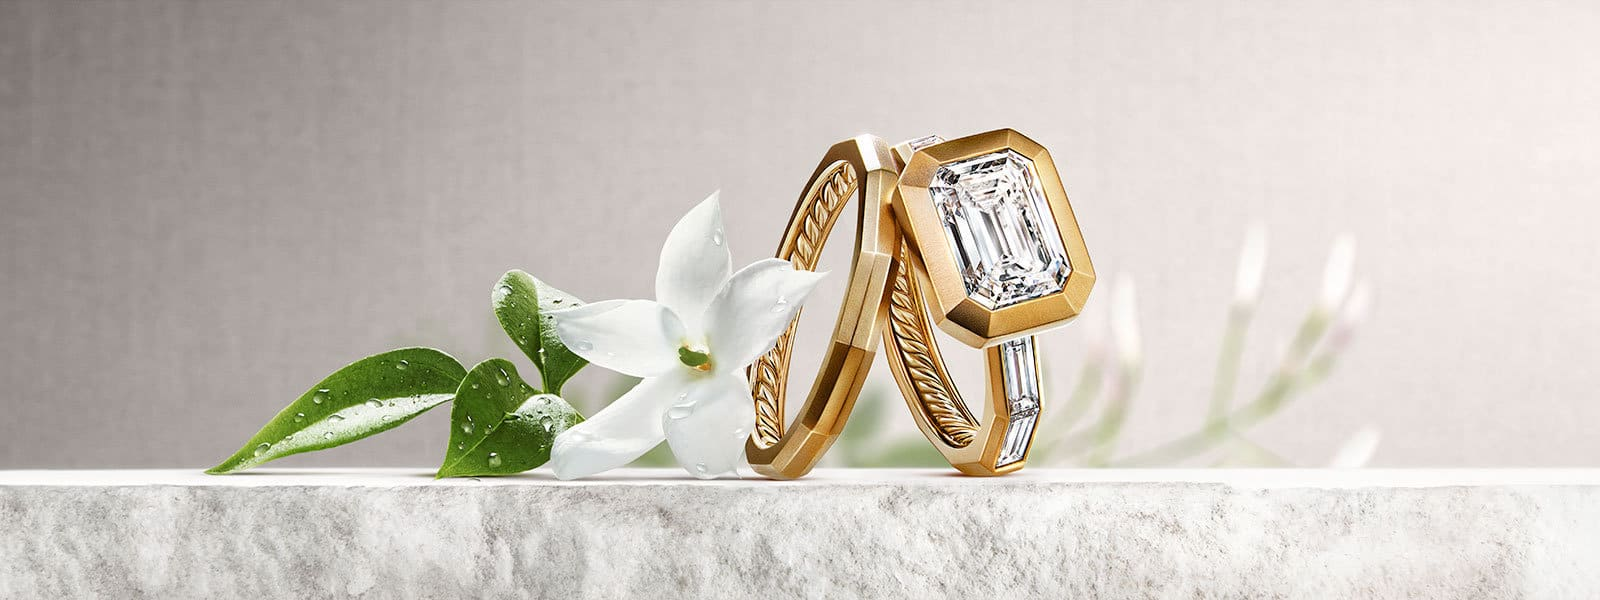 DY Delaunay engagement ring and wedding band in 18K yellow gold with diamonds on a stone with jasmine flowers.